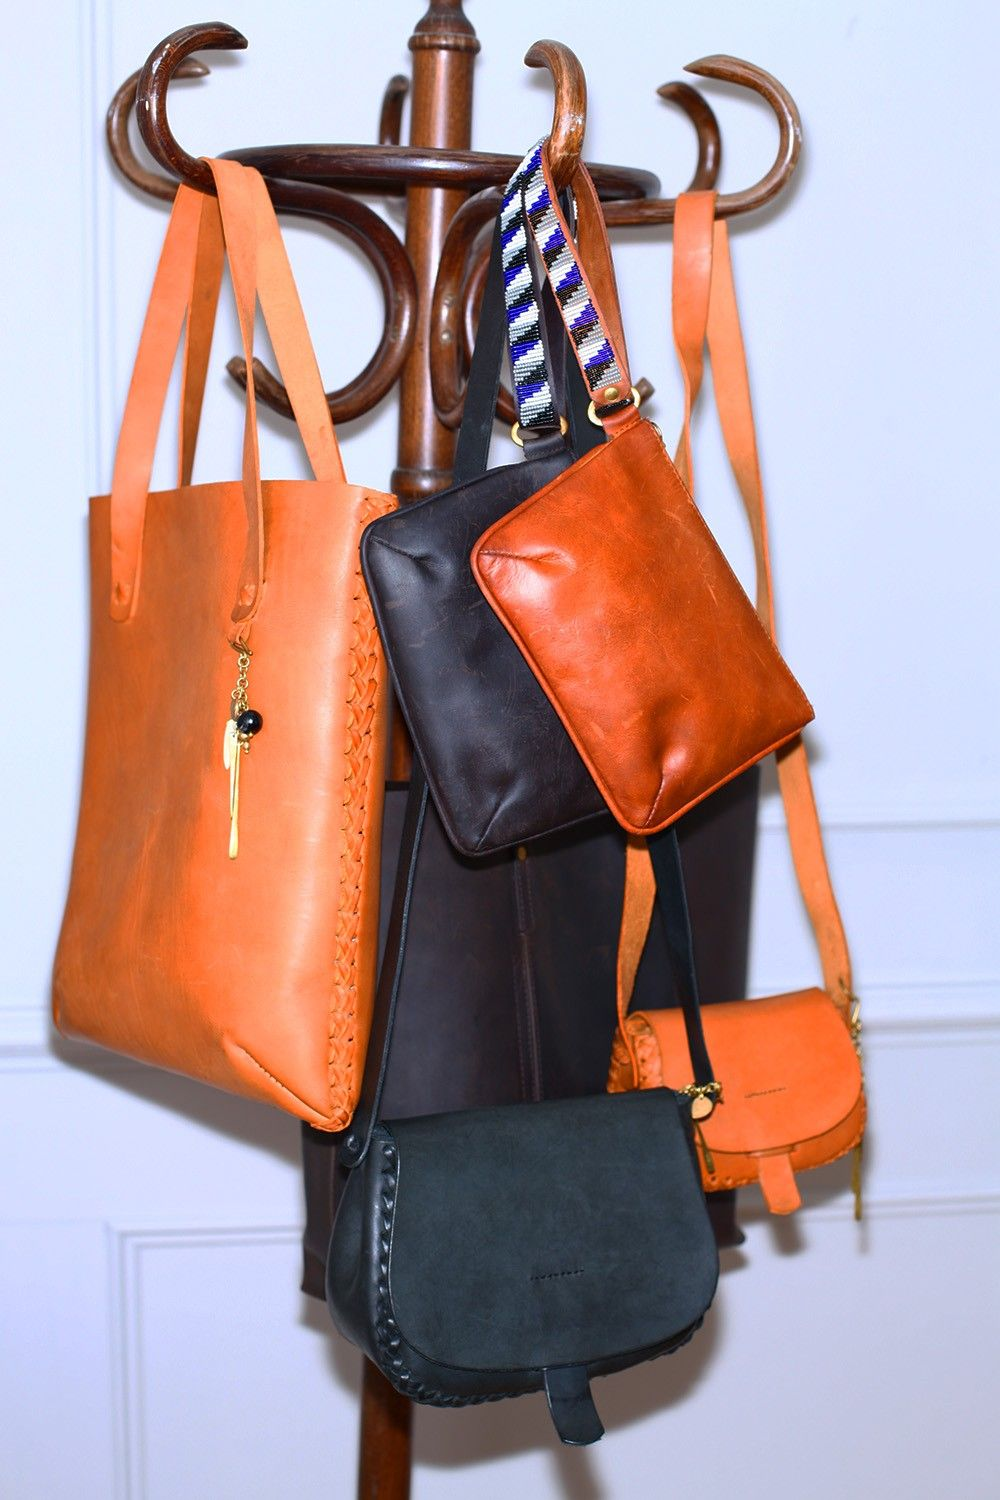 Made Uk S Gorgeous Leather Bags Are Handmade With Love In Kenya